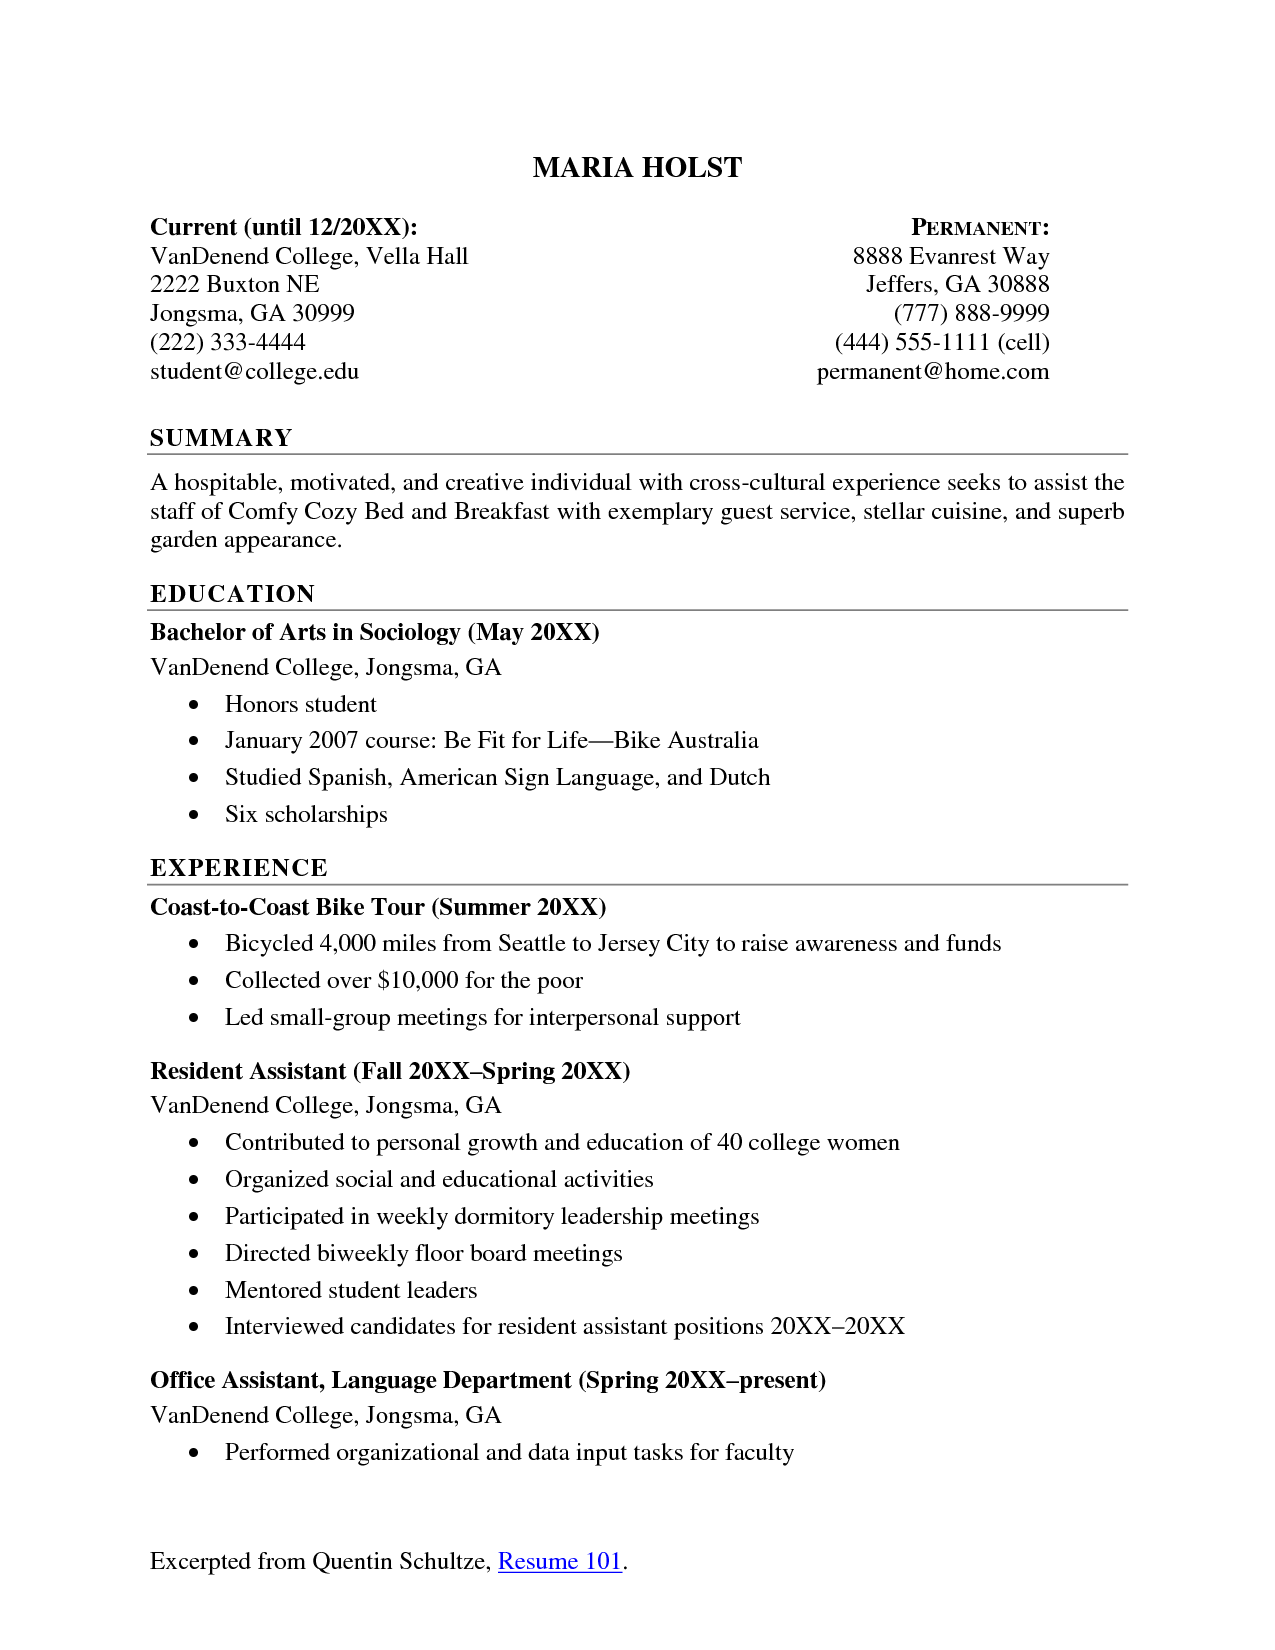 Resume Template For College Student Sample Resume For College Student Supermamanscom  Httpwww